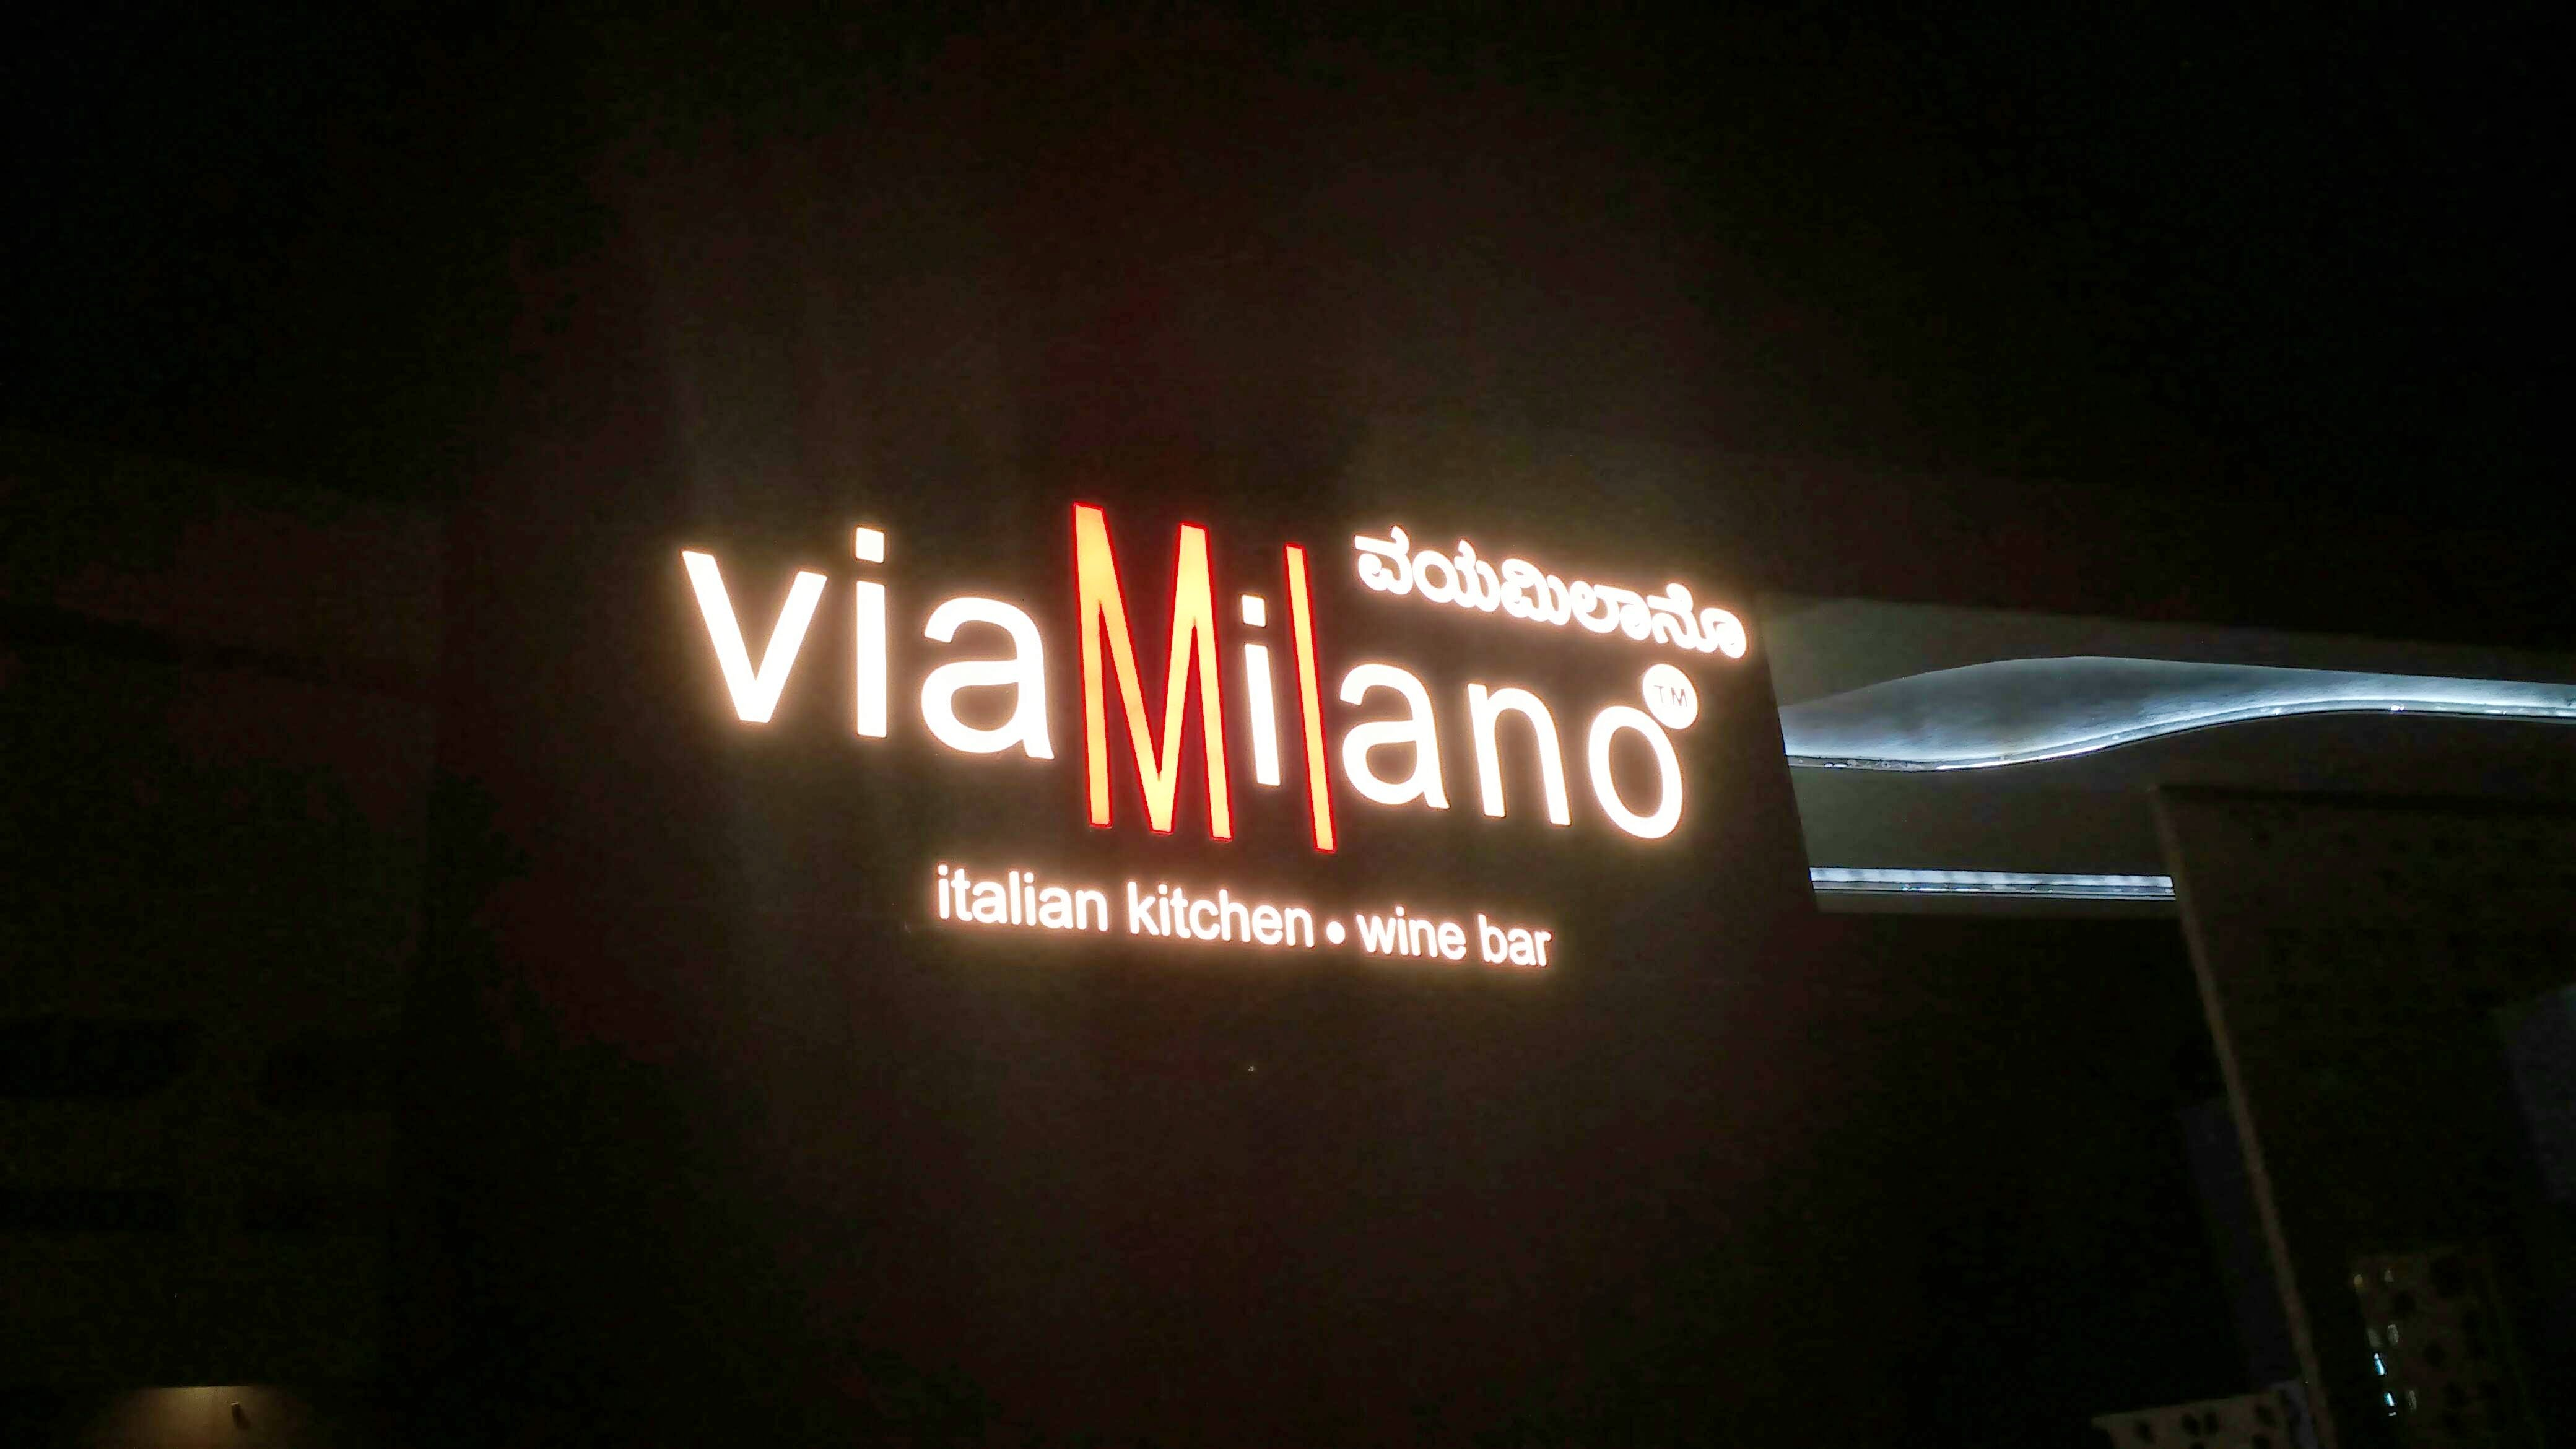 Light,Text,Neon,Night,Electronic signage,Signage,Lighting,Font,Neon sign,Display device